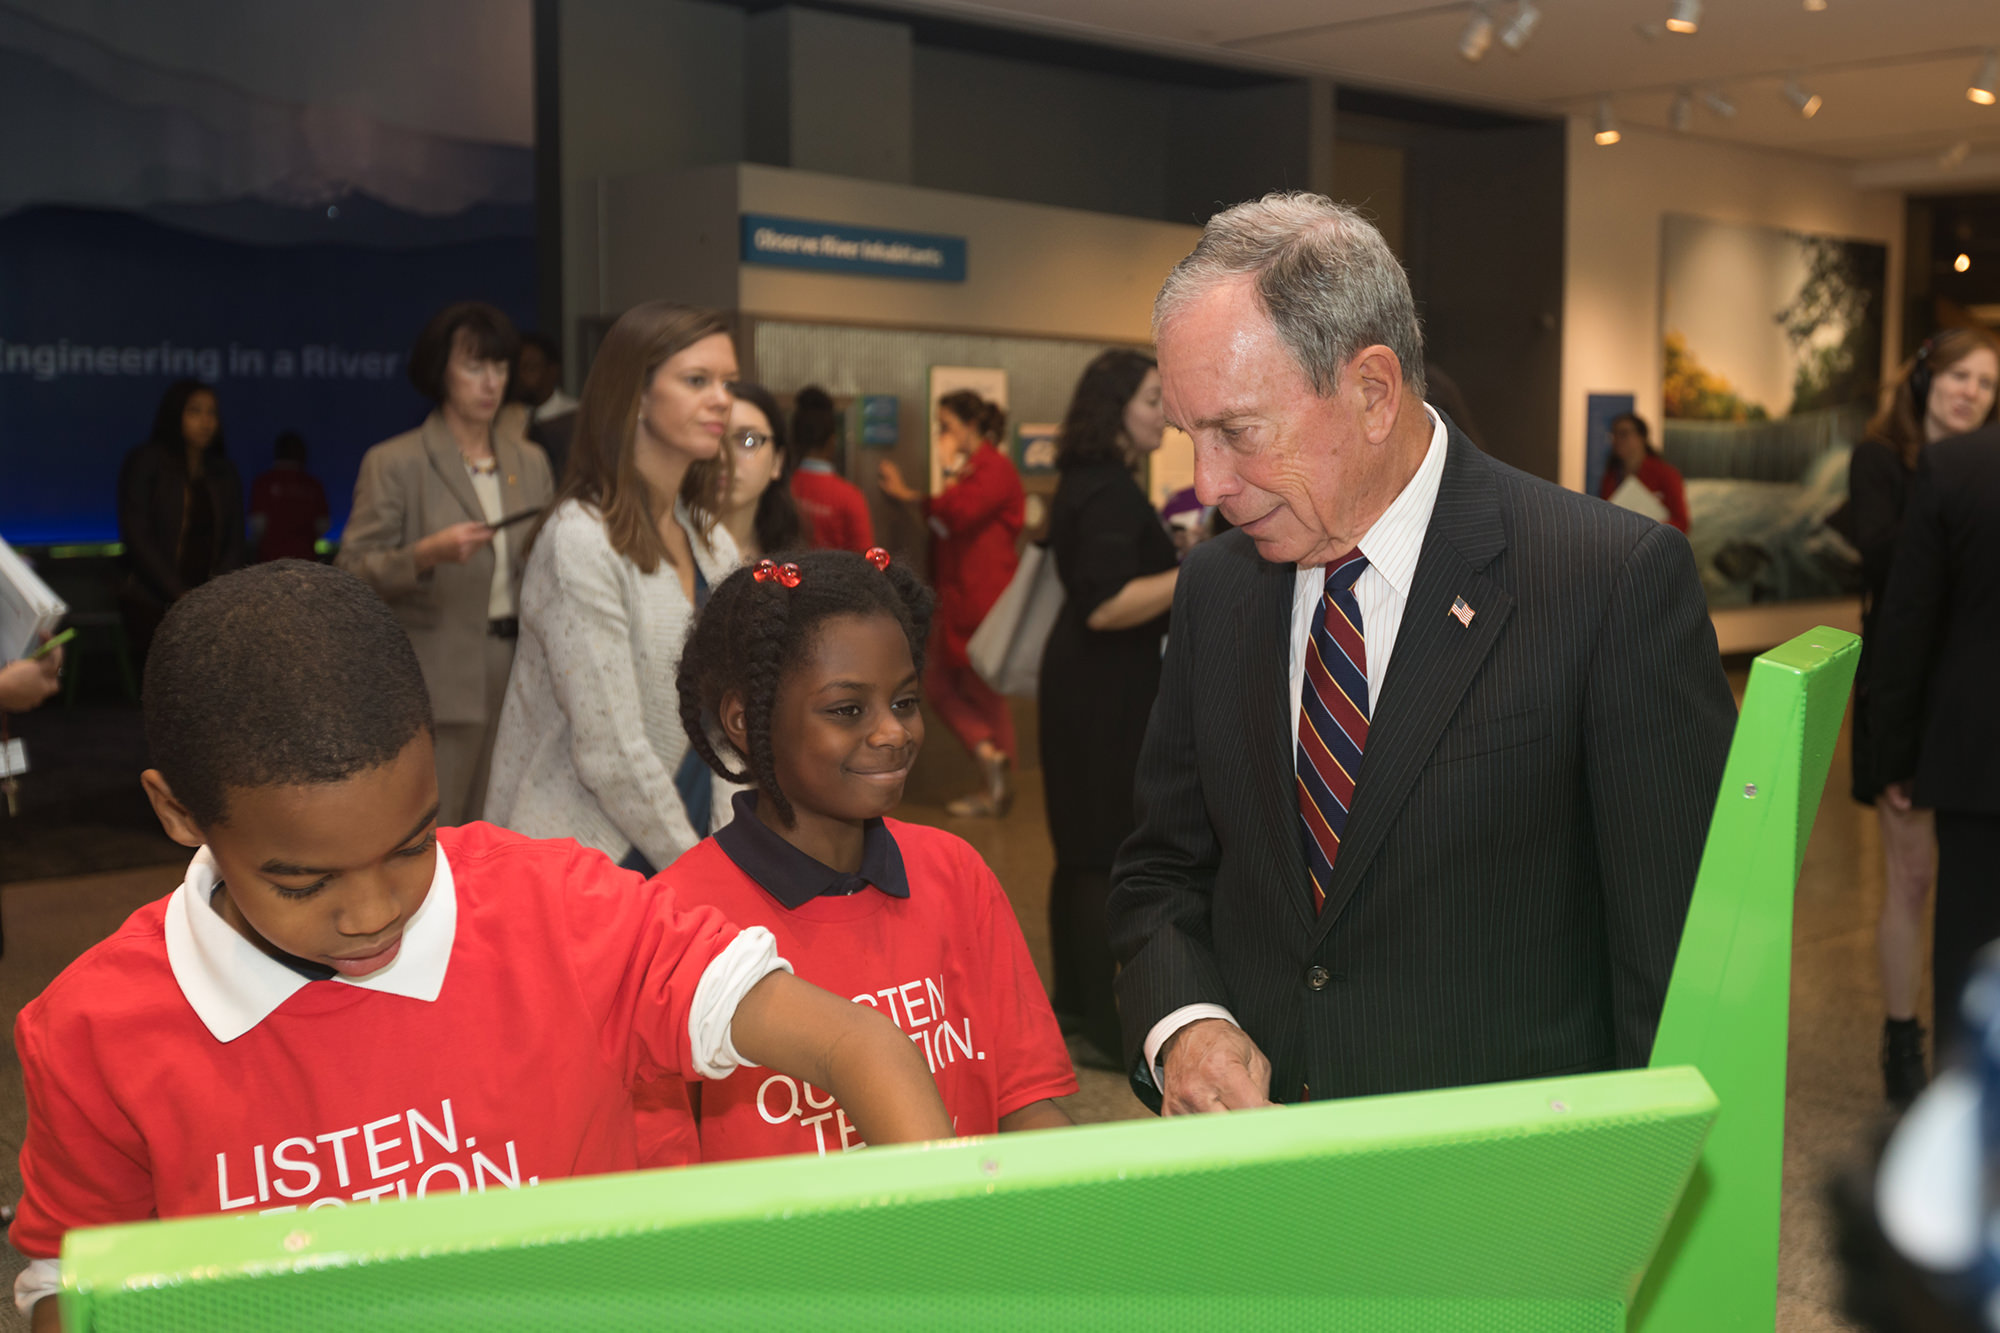 Mike Bloomberg at the Museum of Science, Boston.